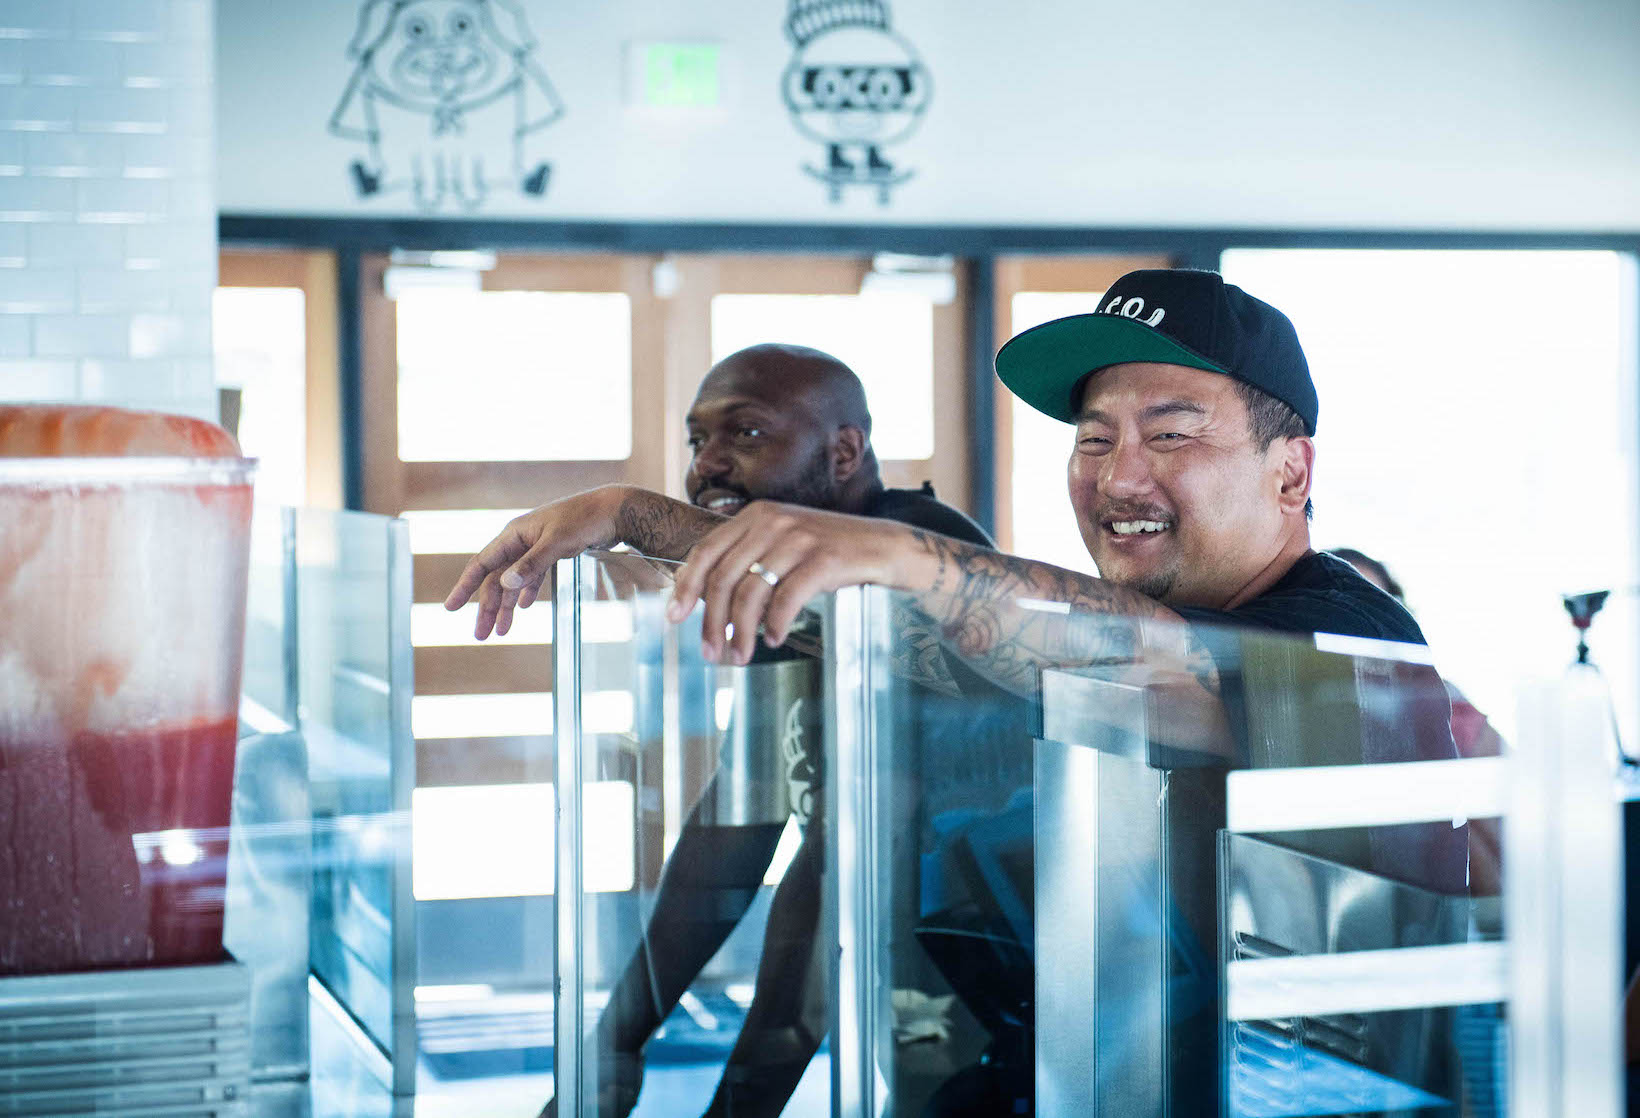 Roy Choi (right) in front of Locol in Watts with one of his managers, Terry (left).